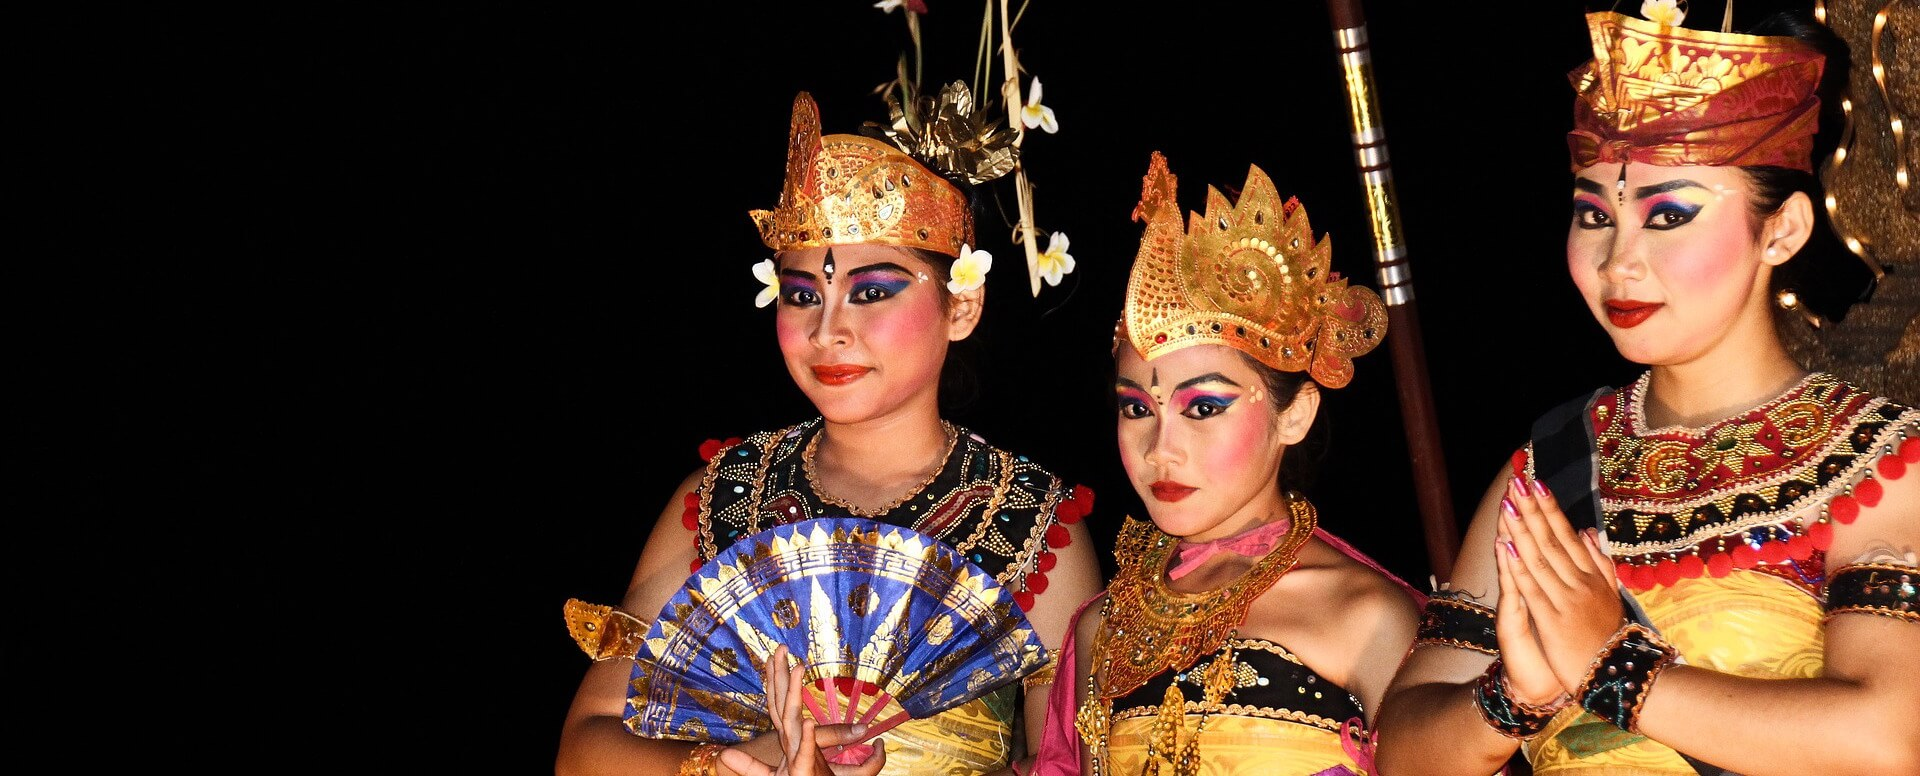 Culture & Tradition in Bali - Bali